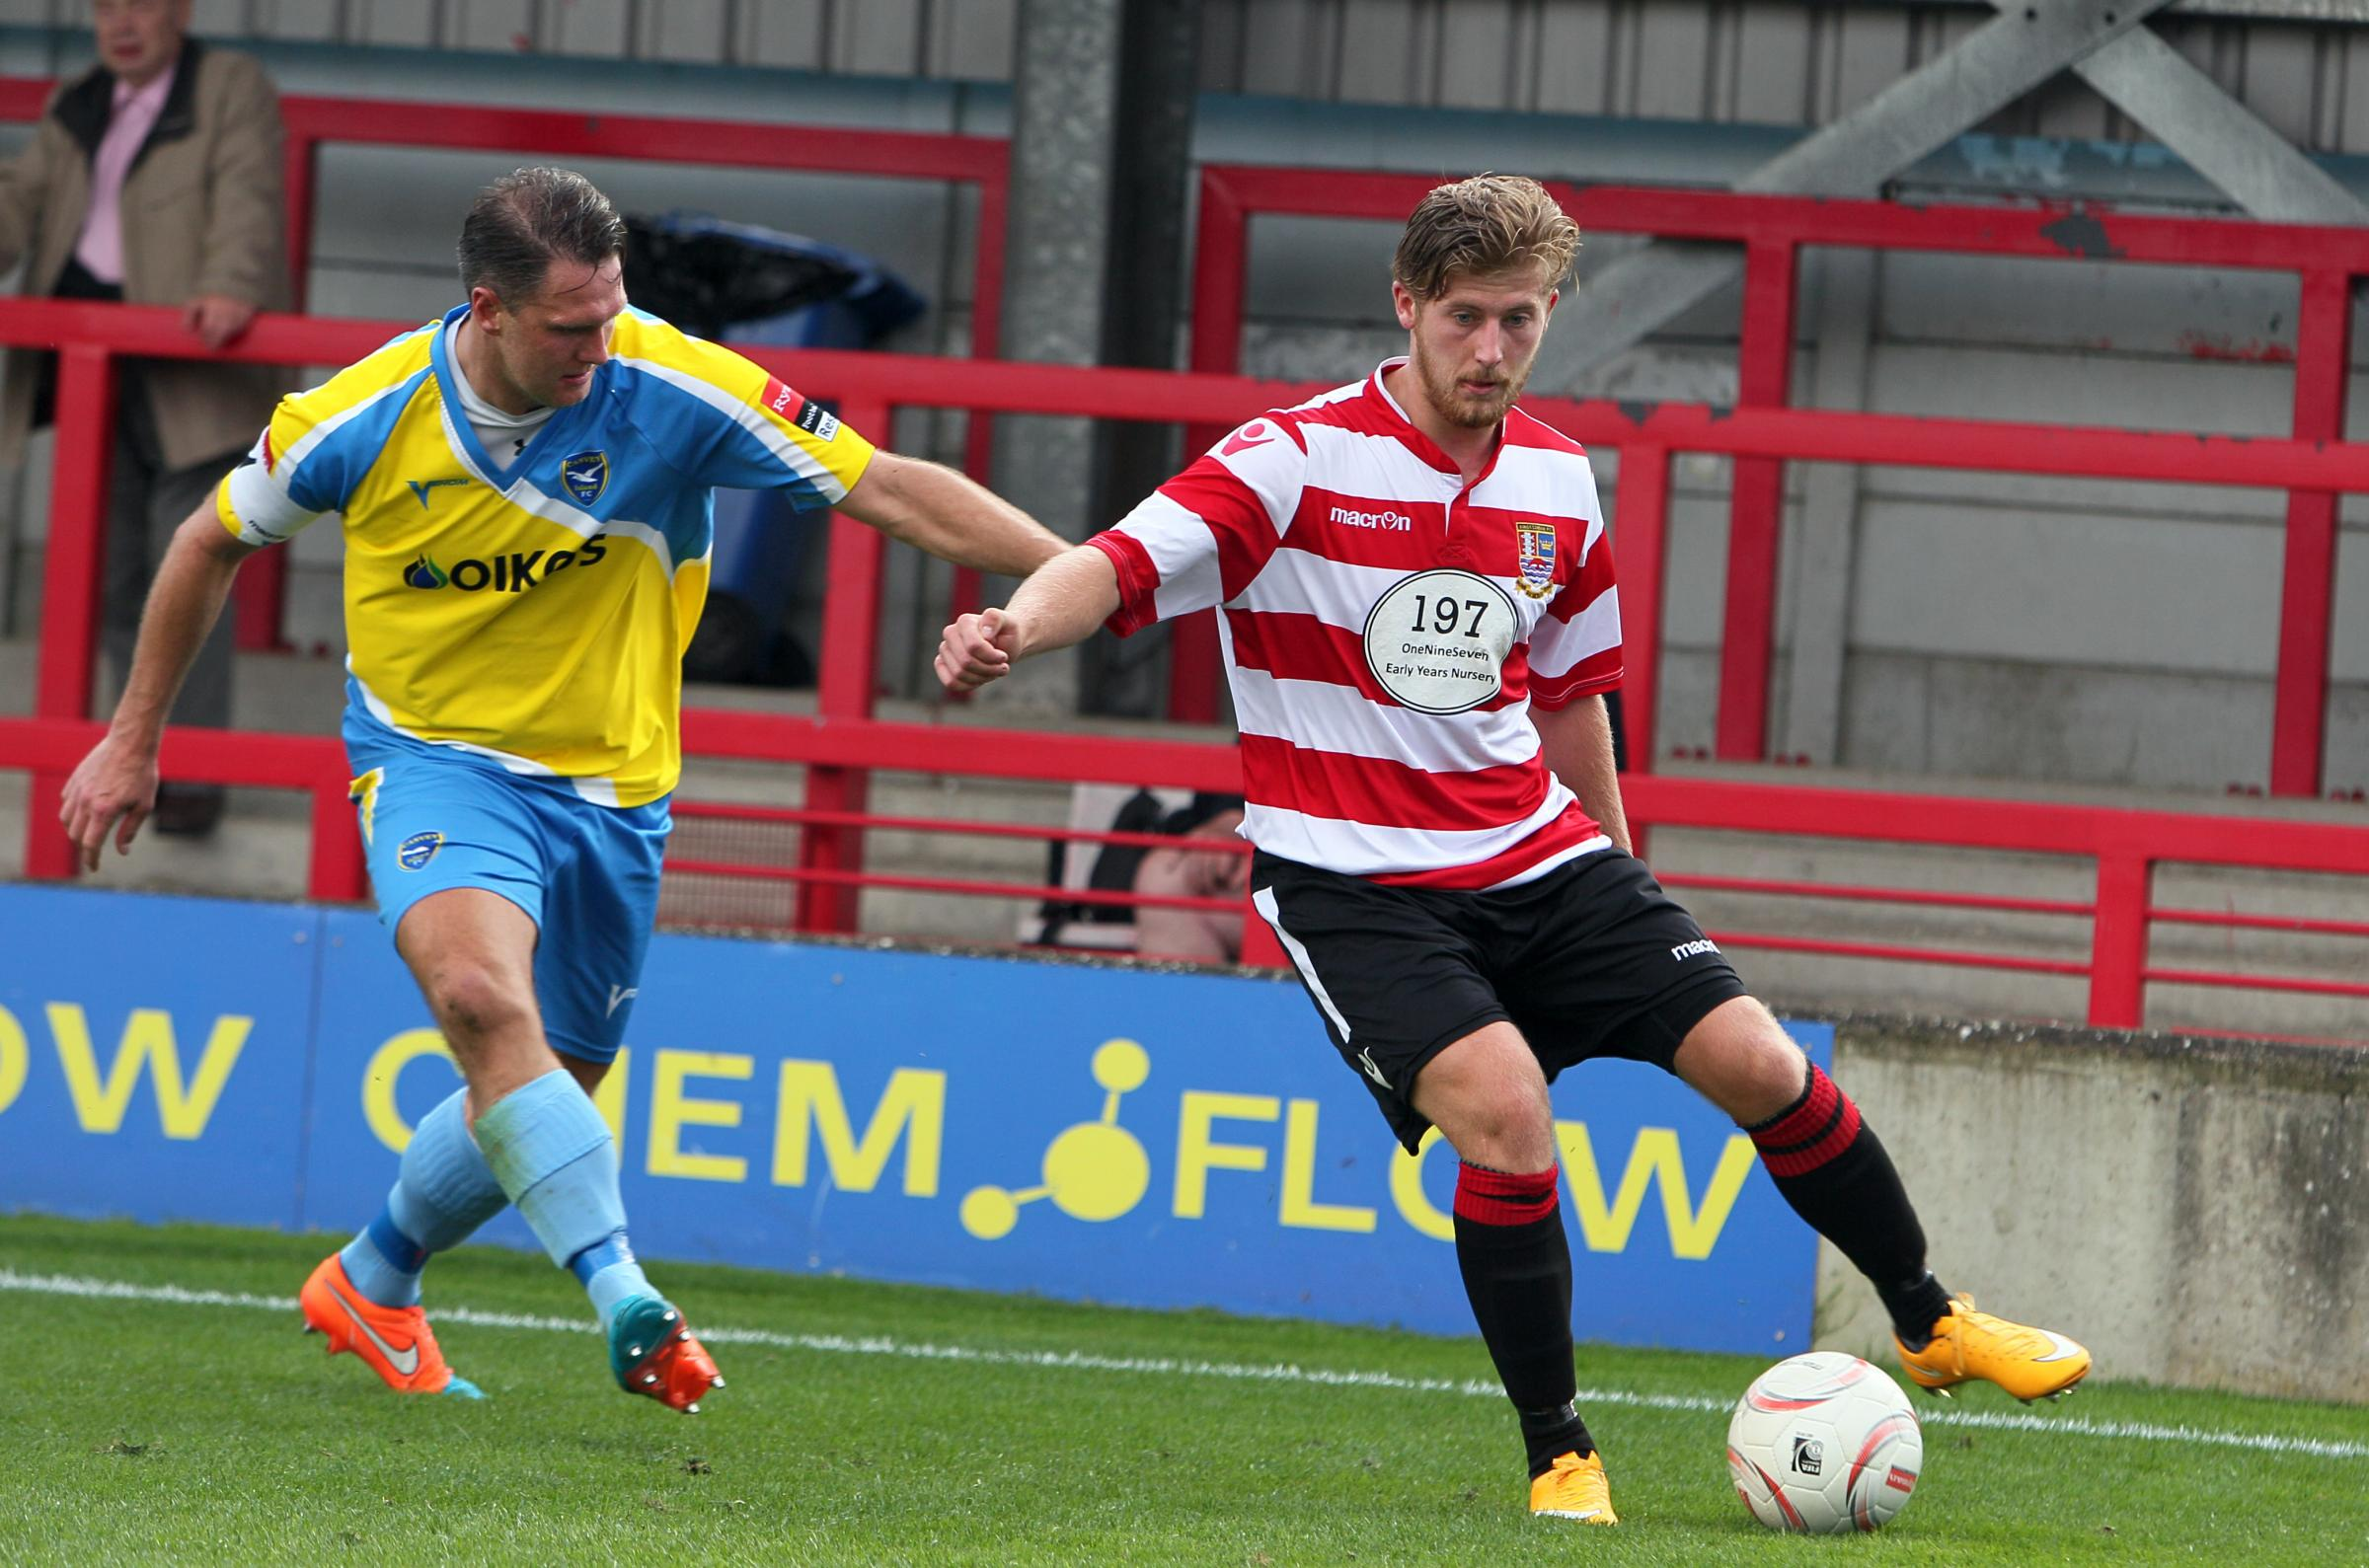 Injury hit: Former Kingstonian forward Jake Kempton needs to get a season of football under his belt to stand chance of Ks return